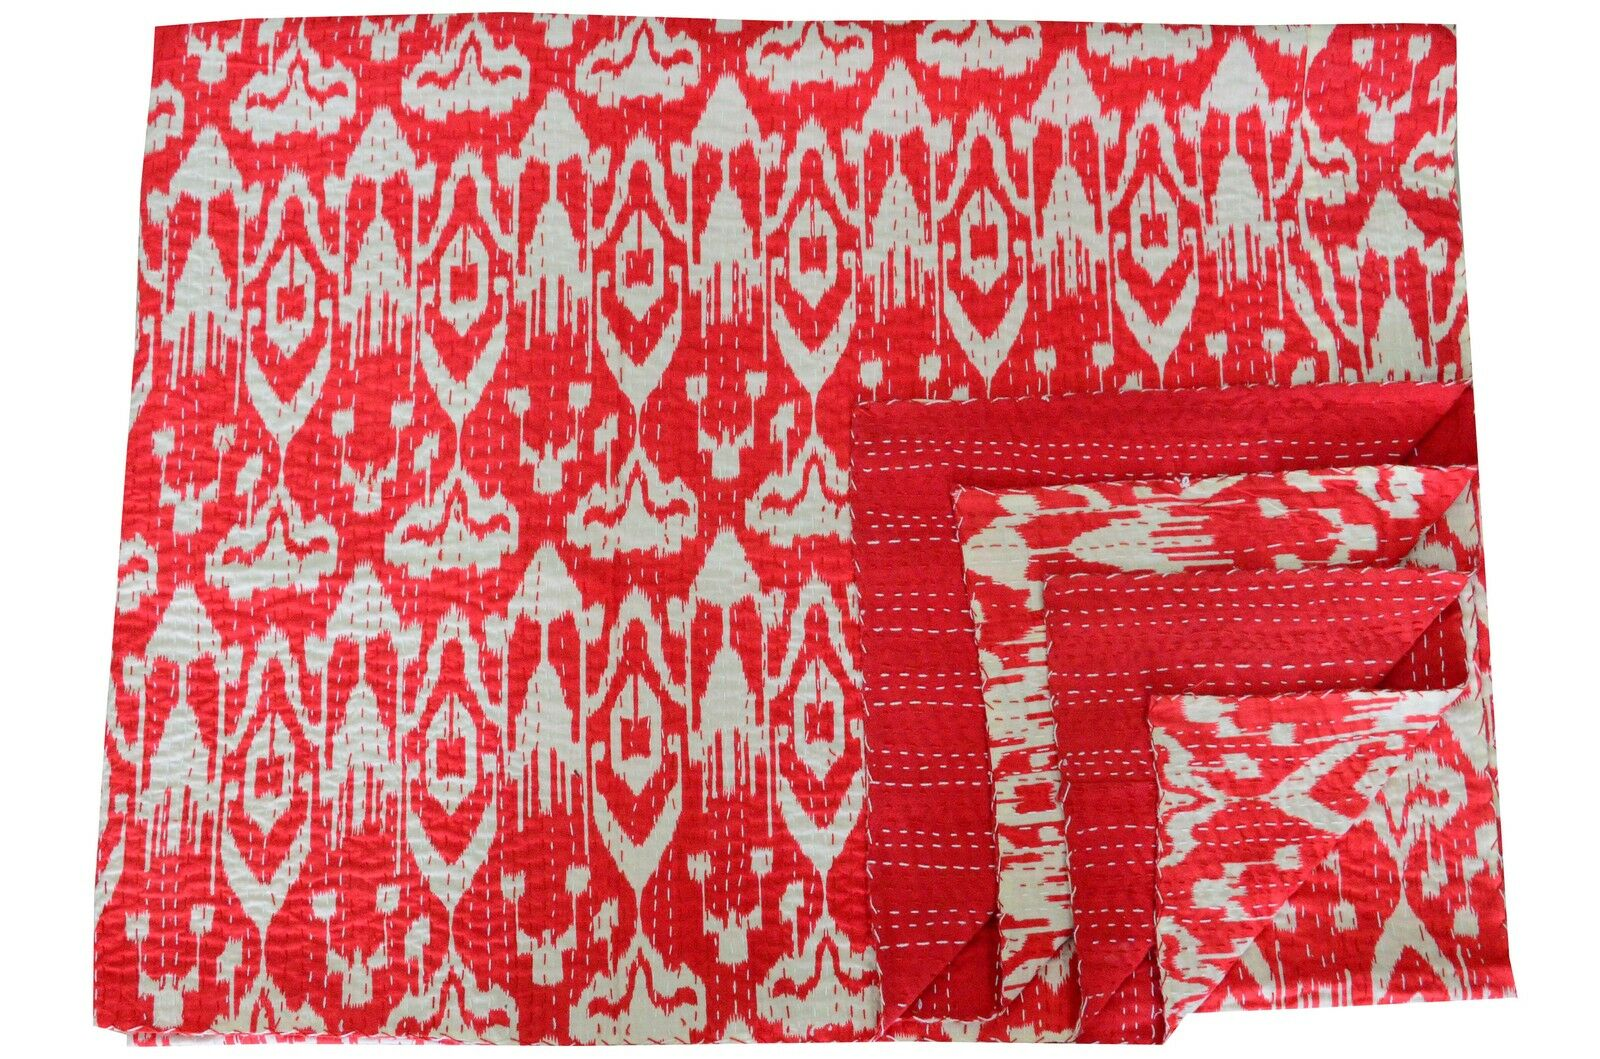 Indian Vintage Cotton Kantha Quilt Abstract Ikat Printed Queen Bedspread Decor